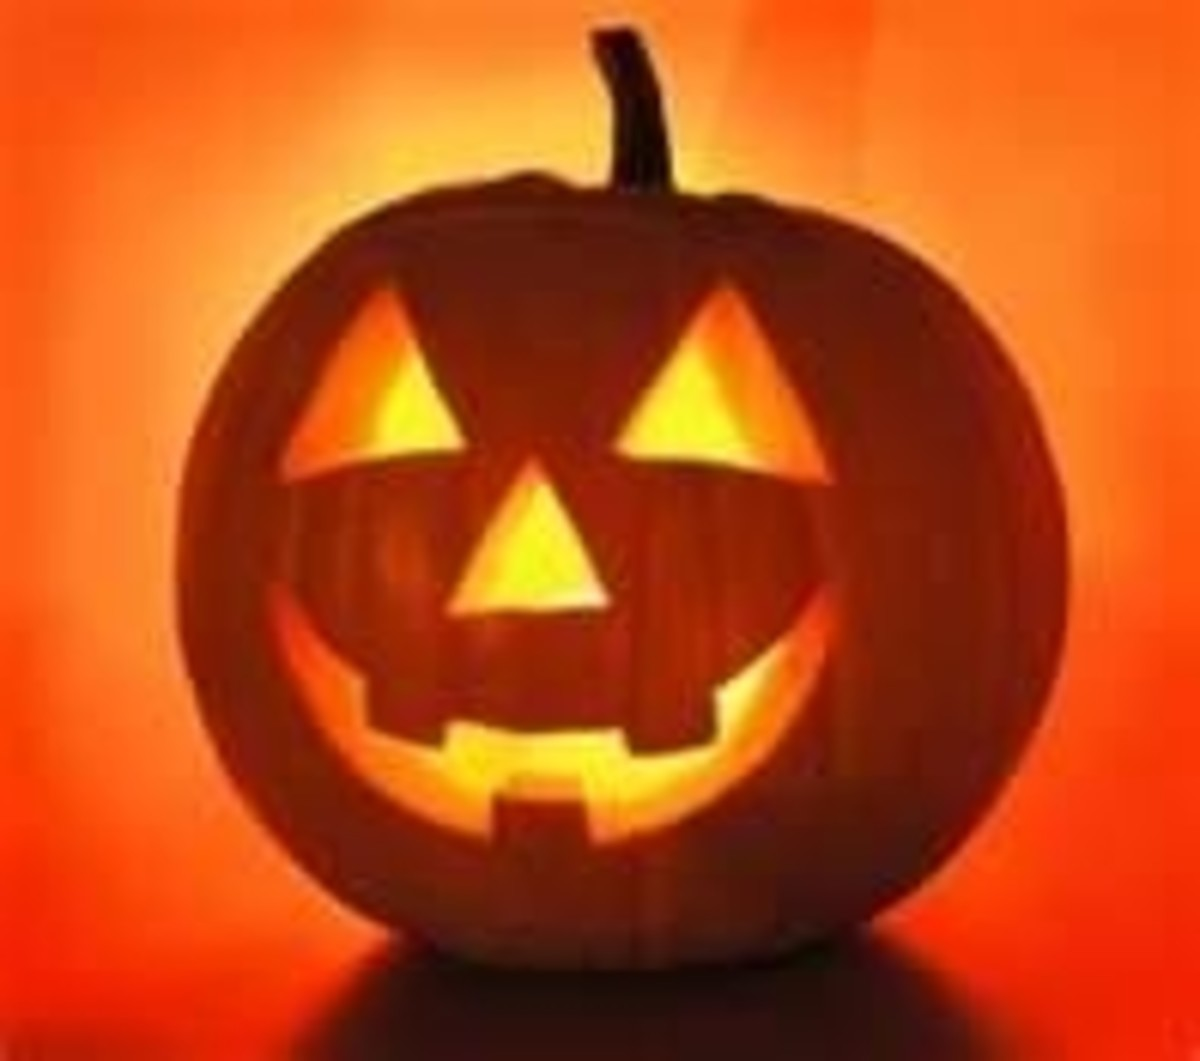 This is a classic jack-o-lantern everyone is familiar with. Photo was shared on Flickr.